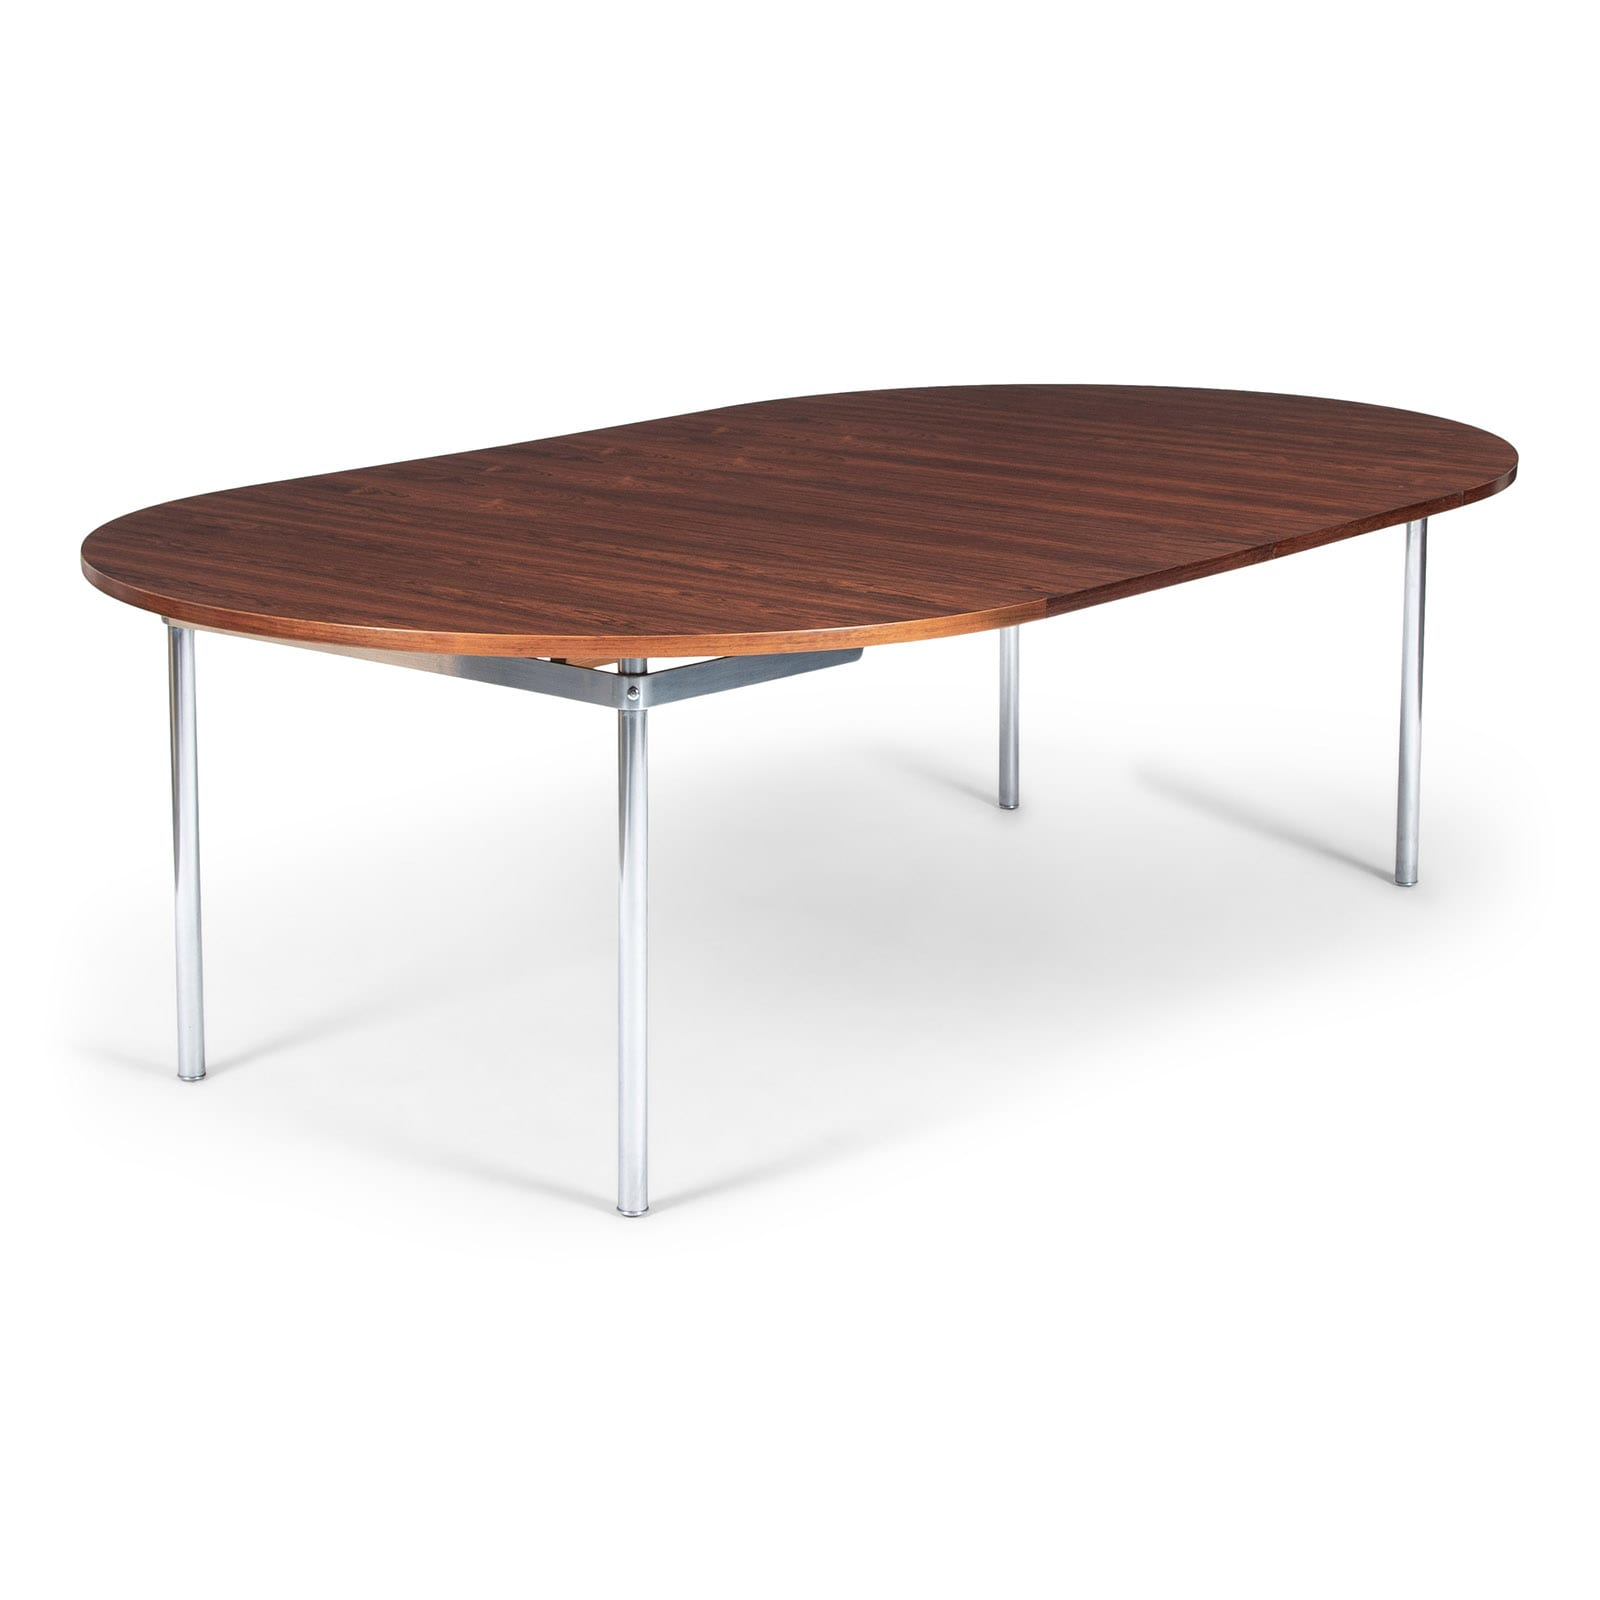 A circular dining table